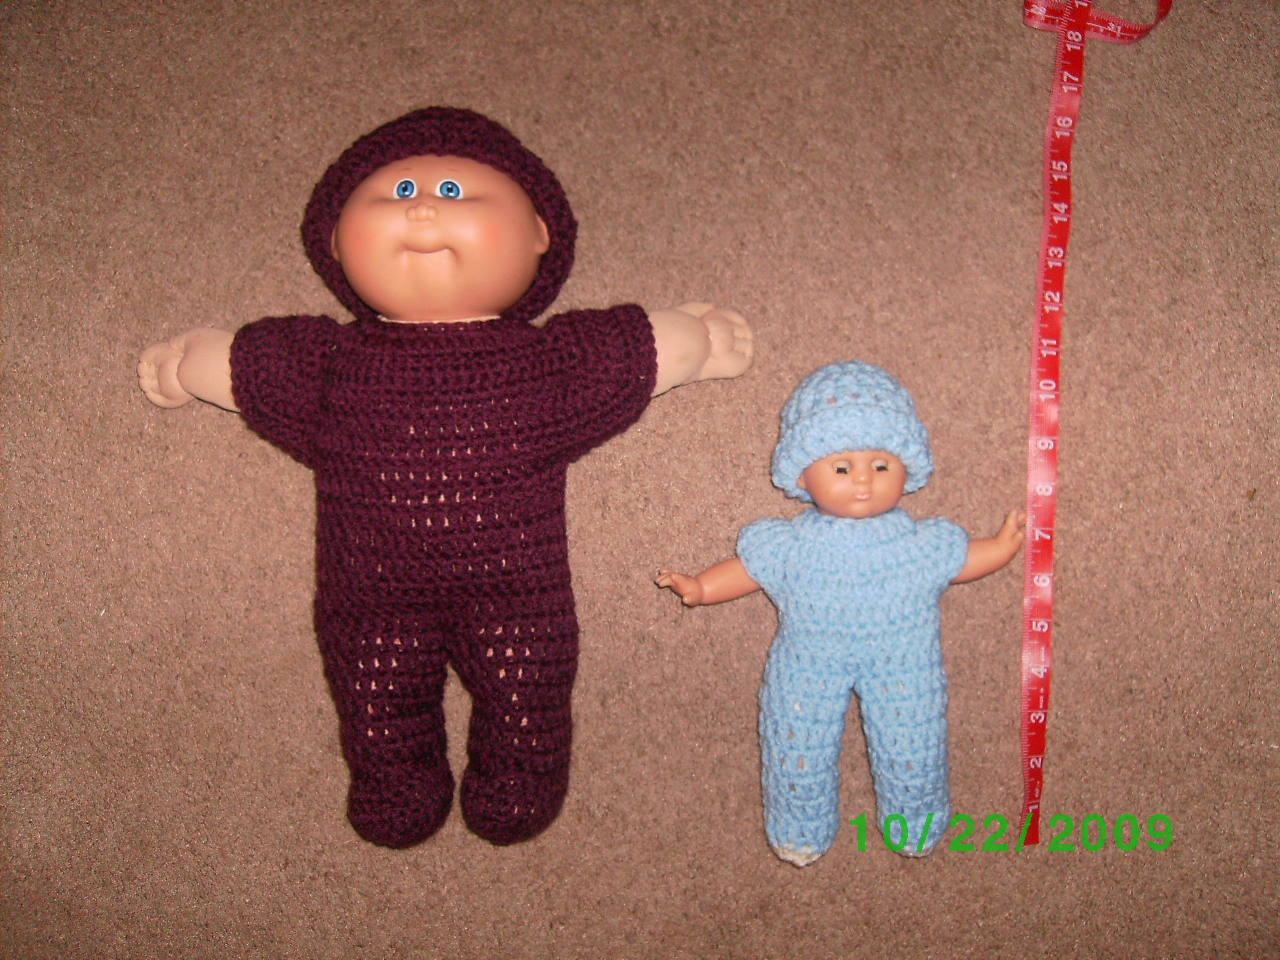 Cabbage Patch Sleeper & Tiny doll sleeper